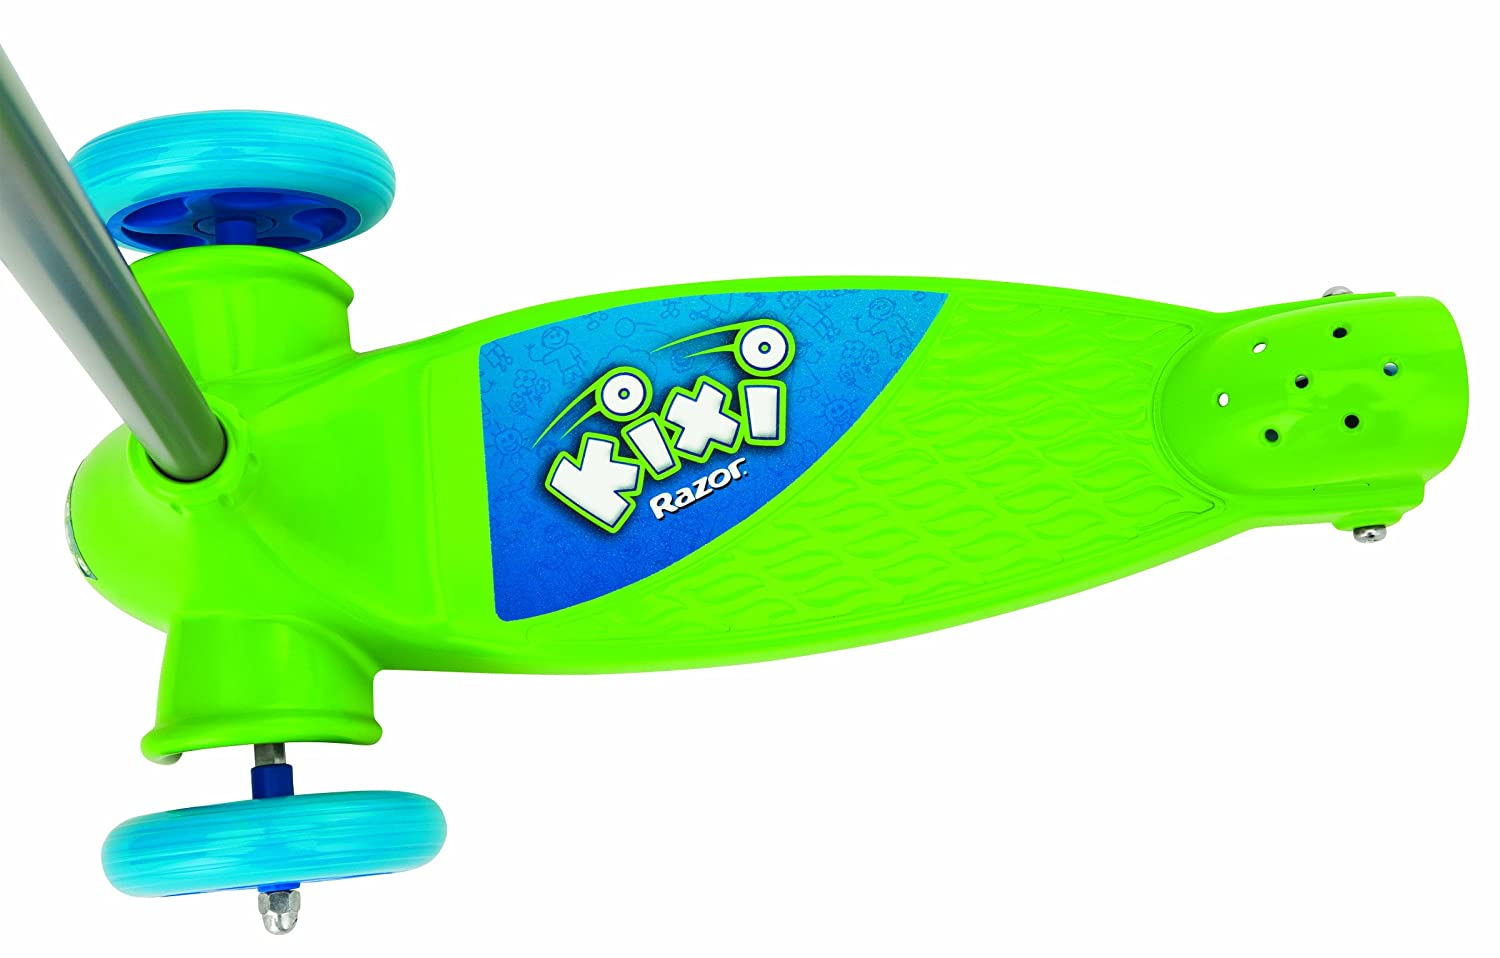 Amazon.com: Razor Kixi Kix Scooter – Azul/Verde: Sports ...